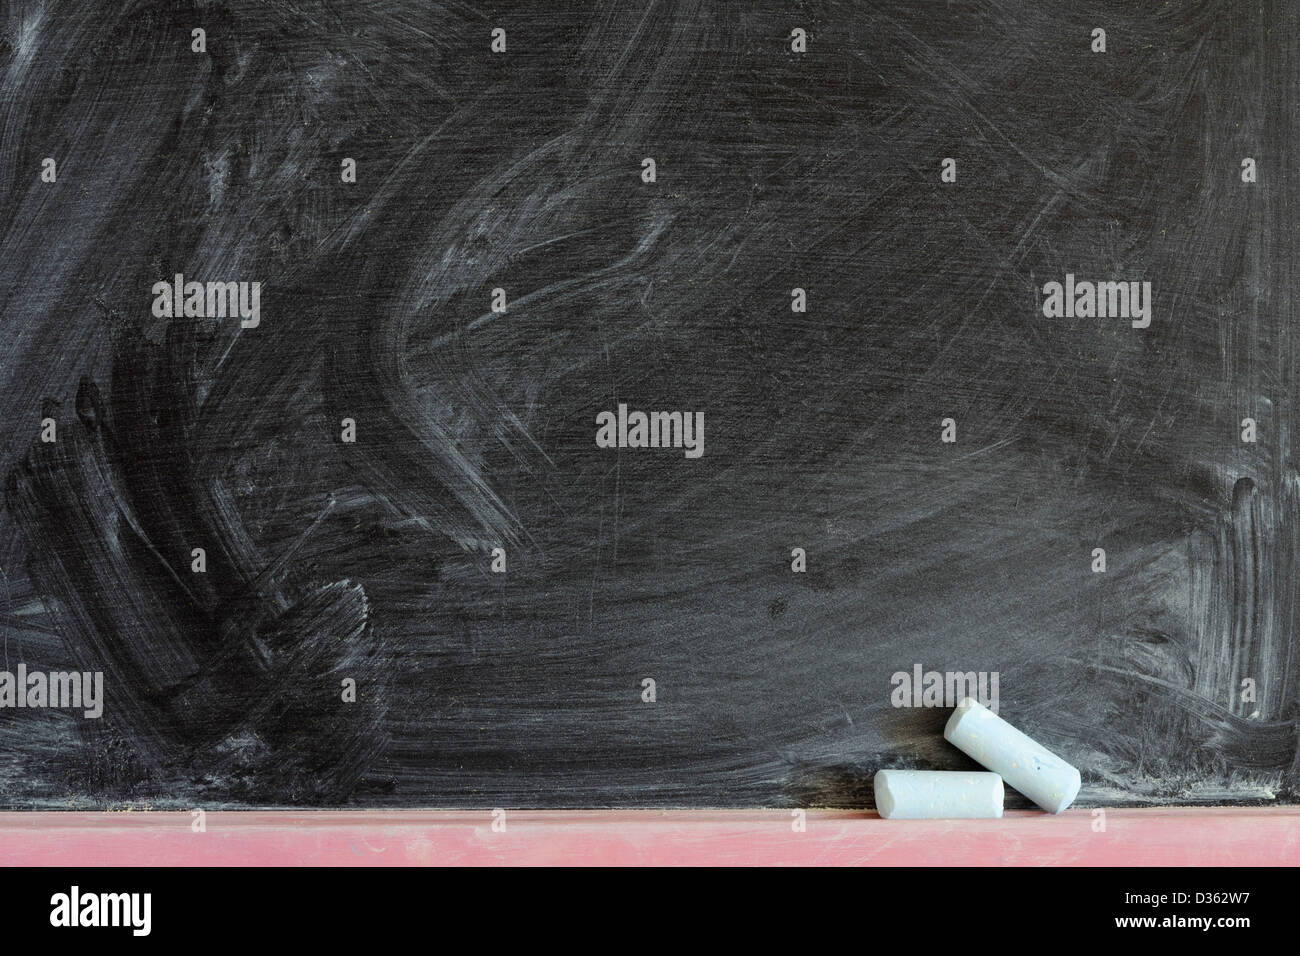 detailed black chalkboard fragment with two chalk pieces - Stock Image